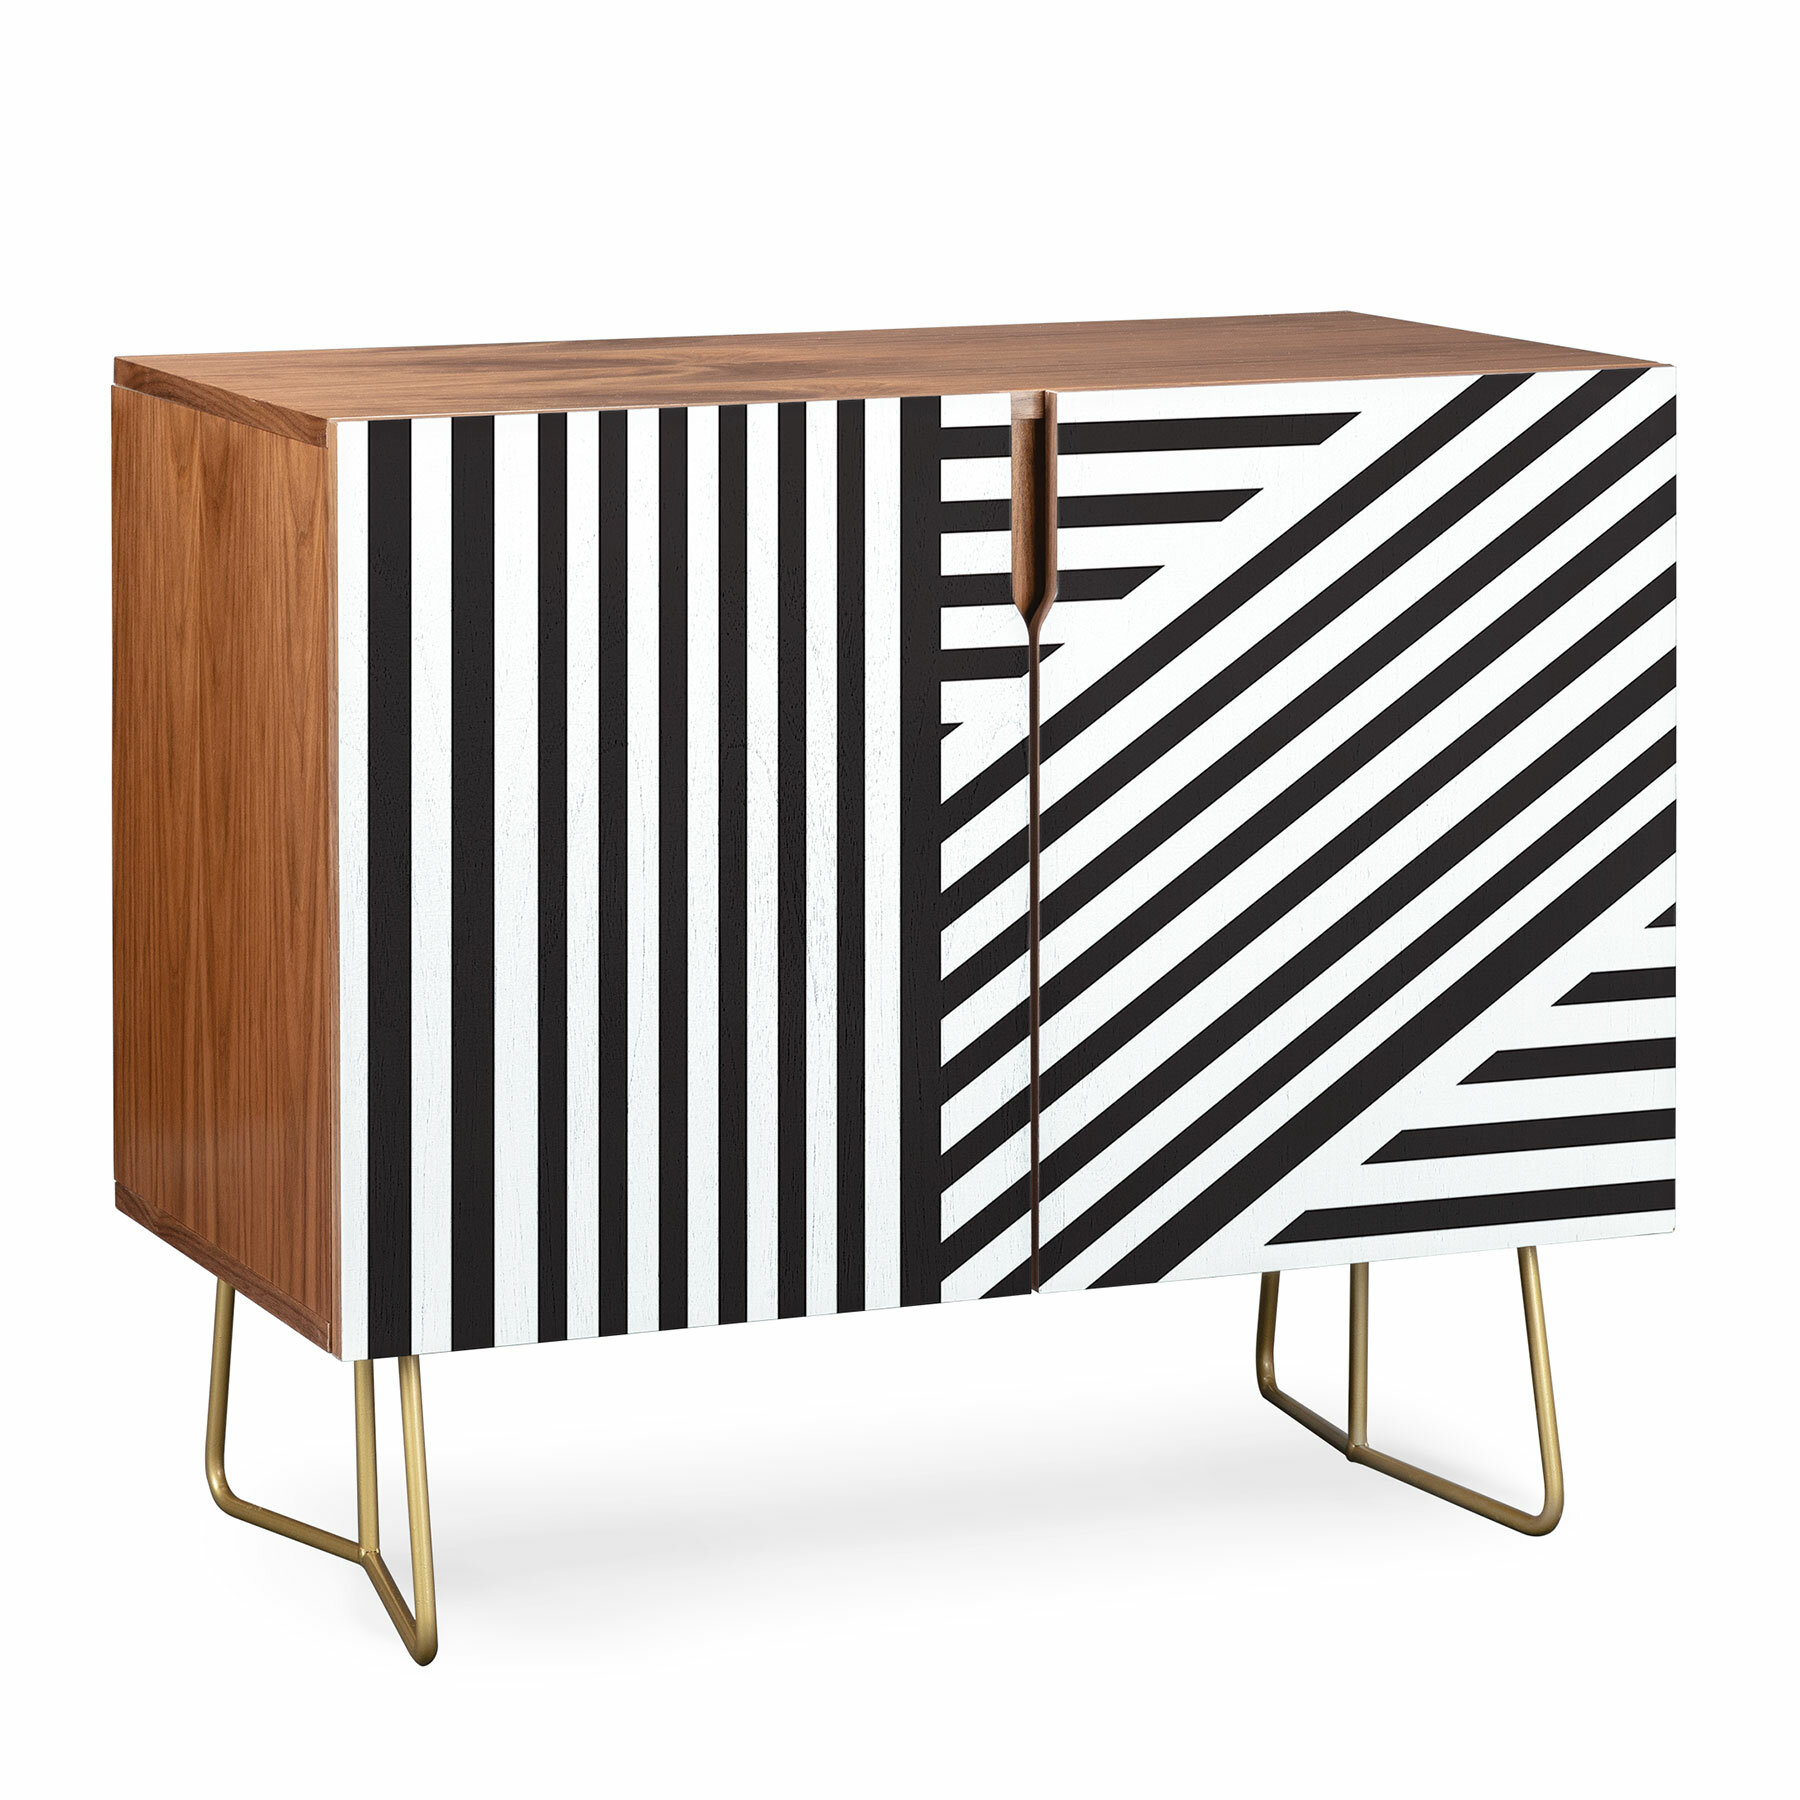 Vy La Everything Nice Credenza with Multi Stripe Credenzas (Image 29 of 30)